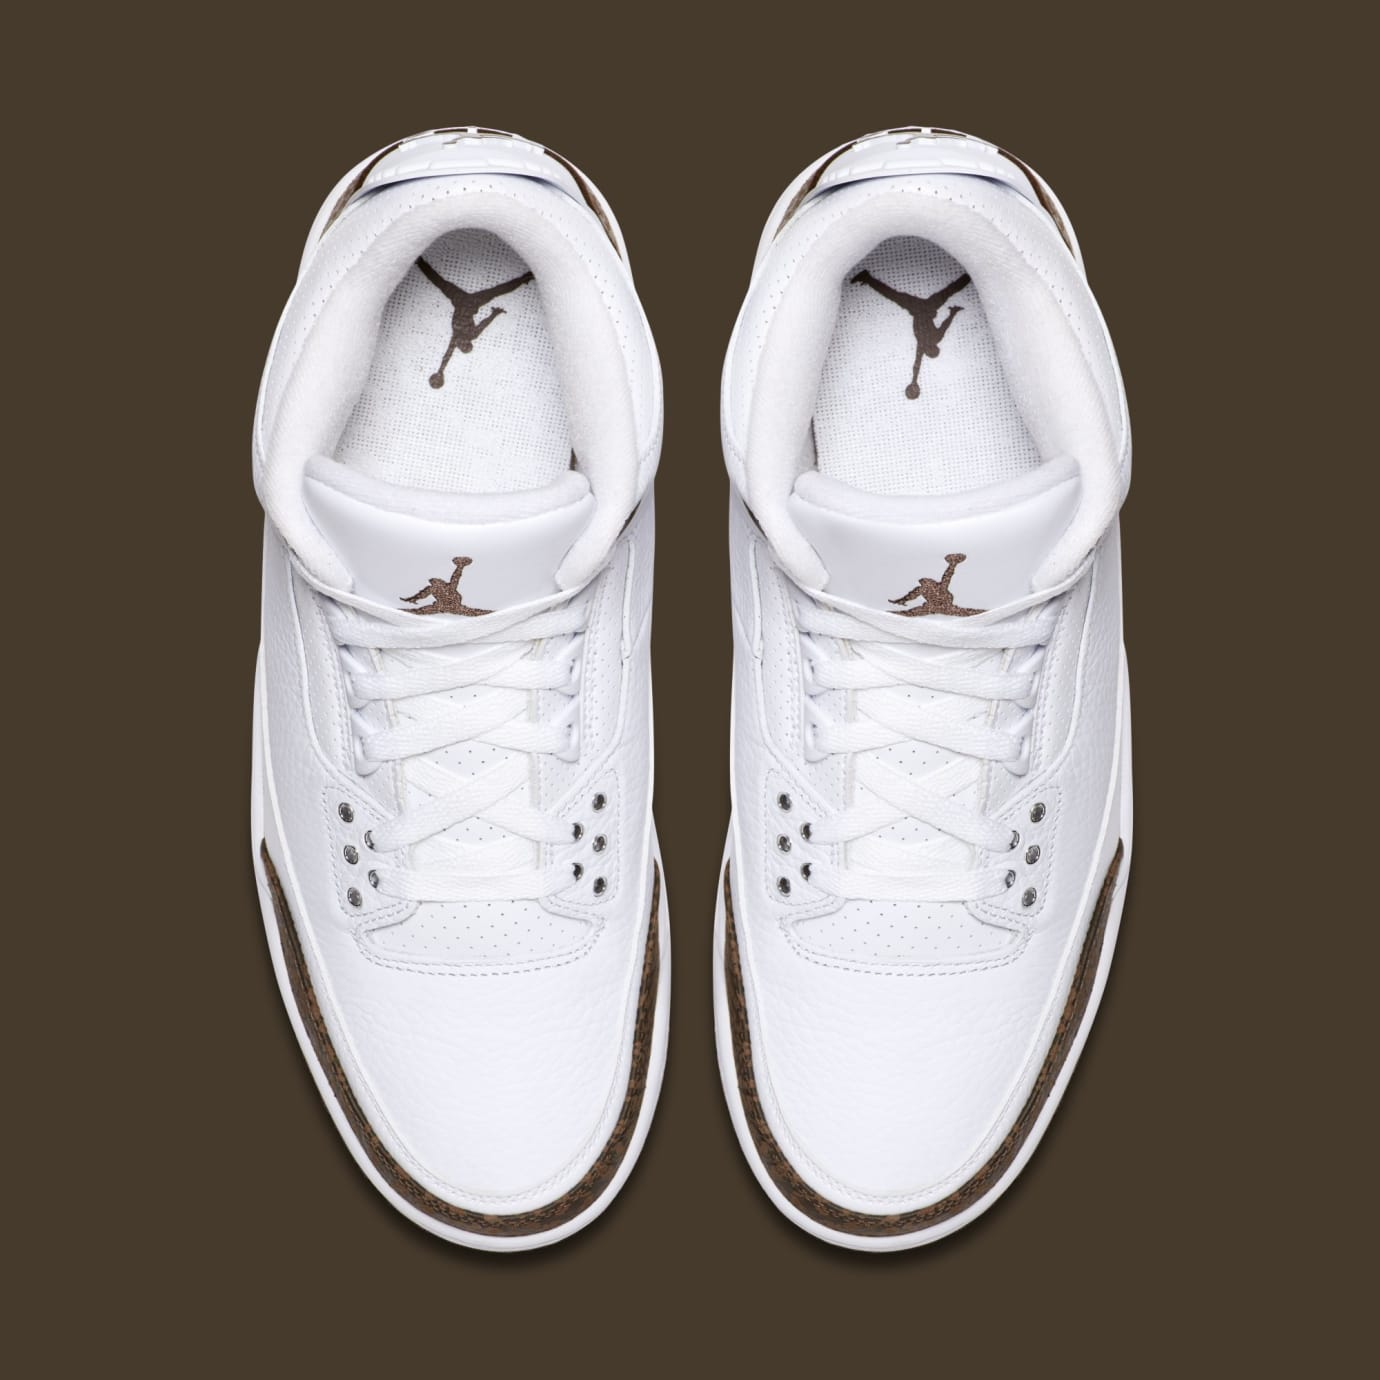 234722c97c1f9f Image via Nike Air Jordan 3  Mocha  White Chrome-Dark Mocha 136064-122 (